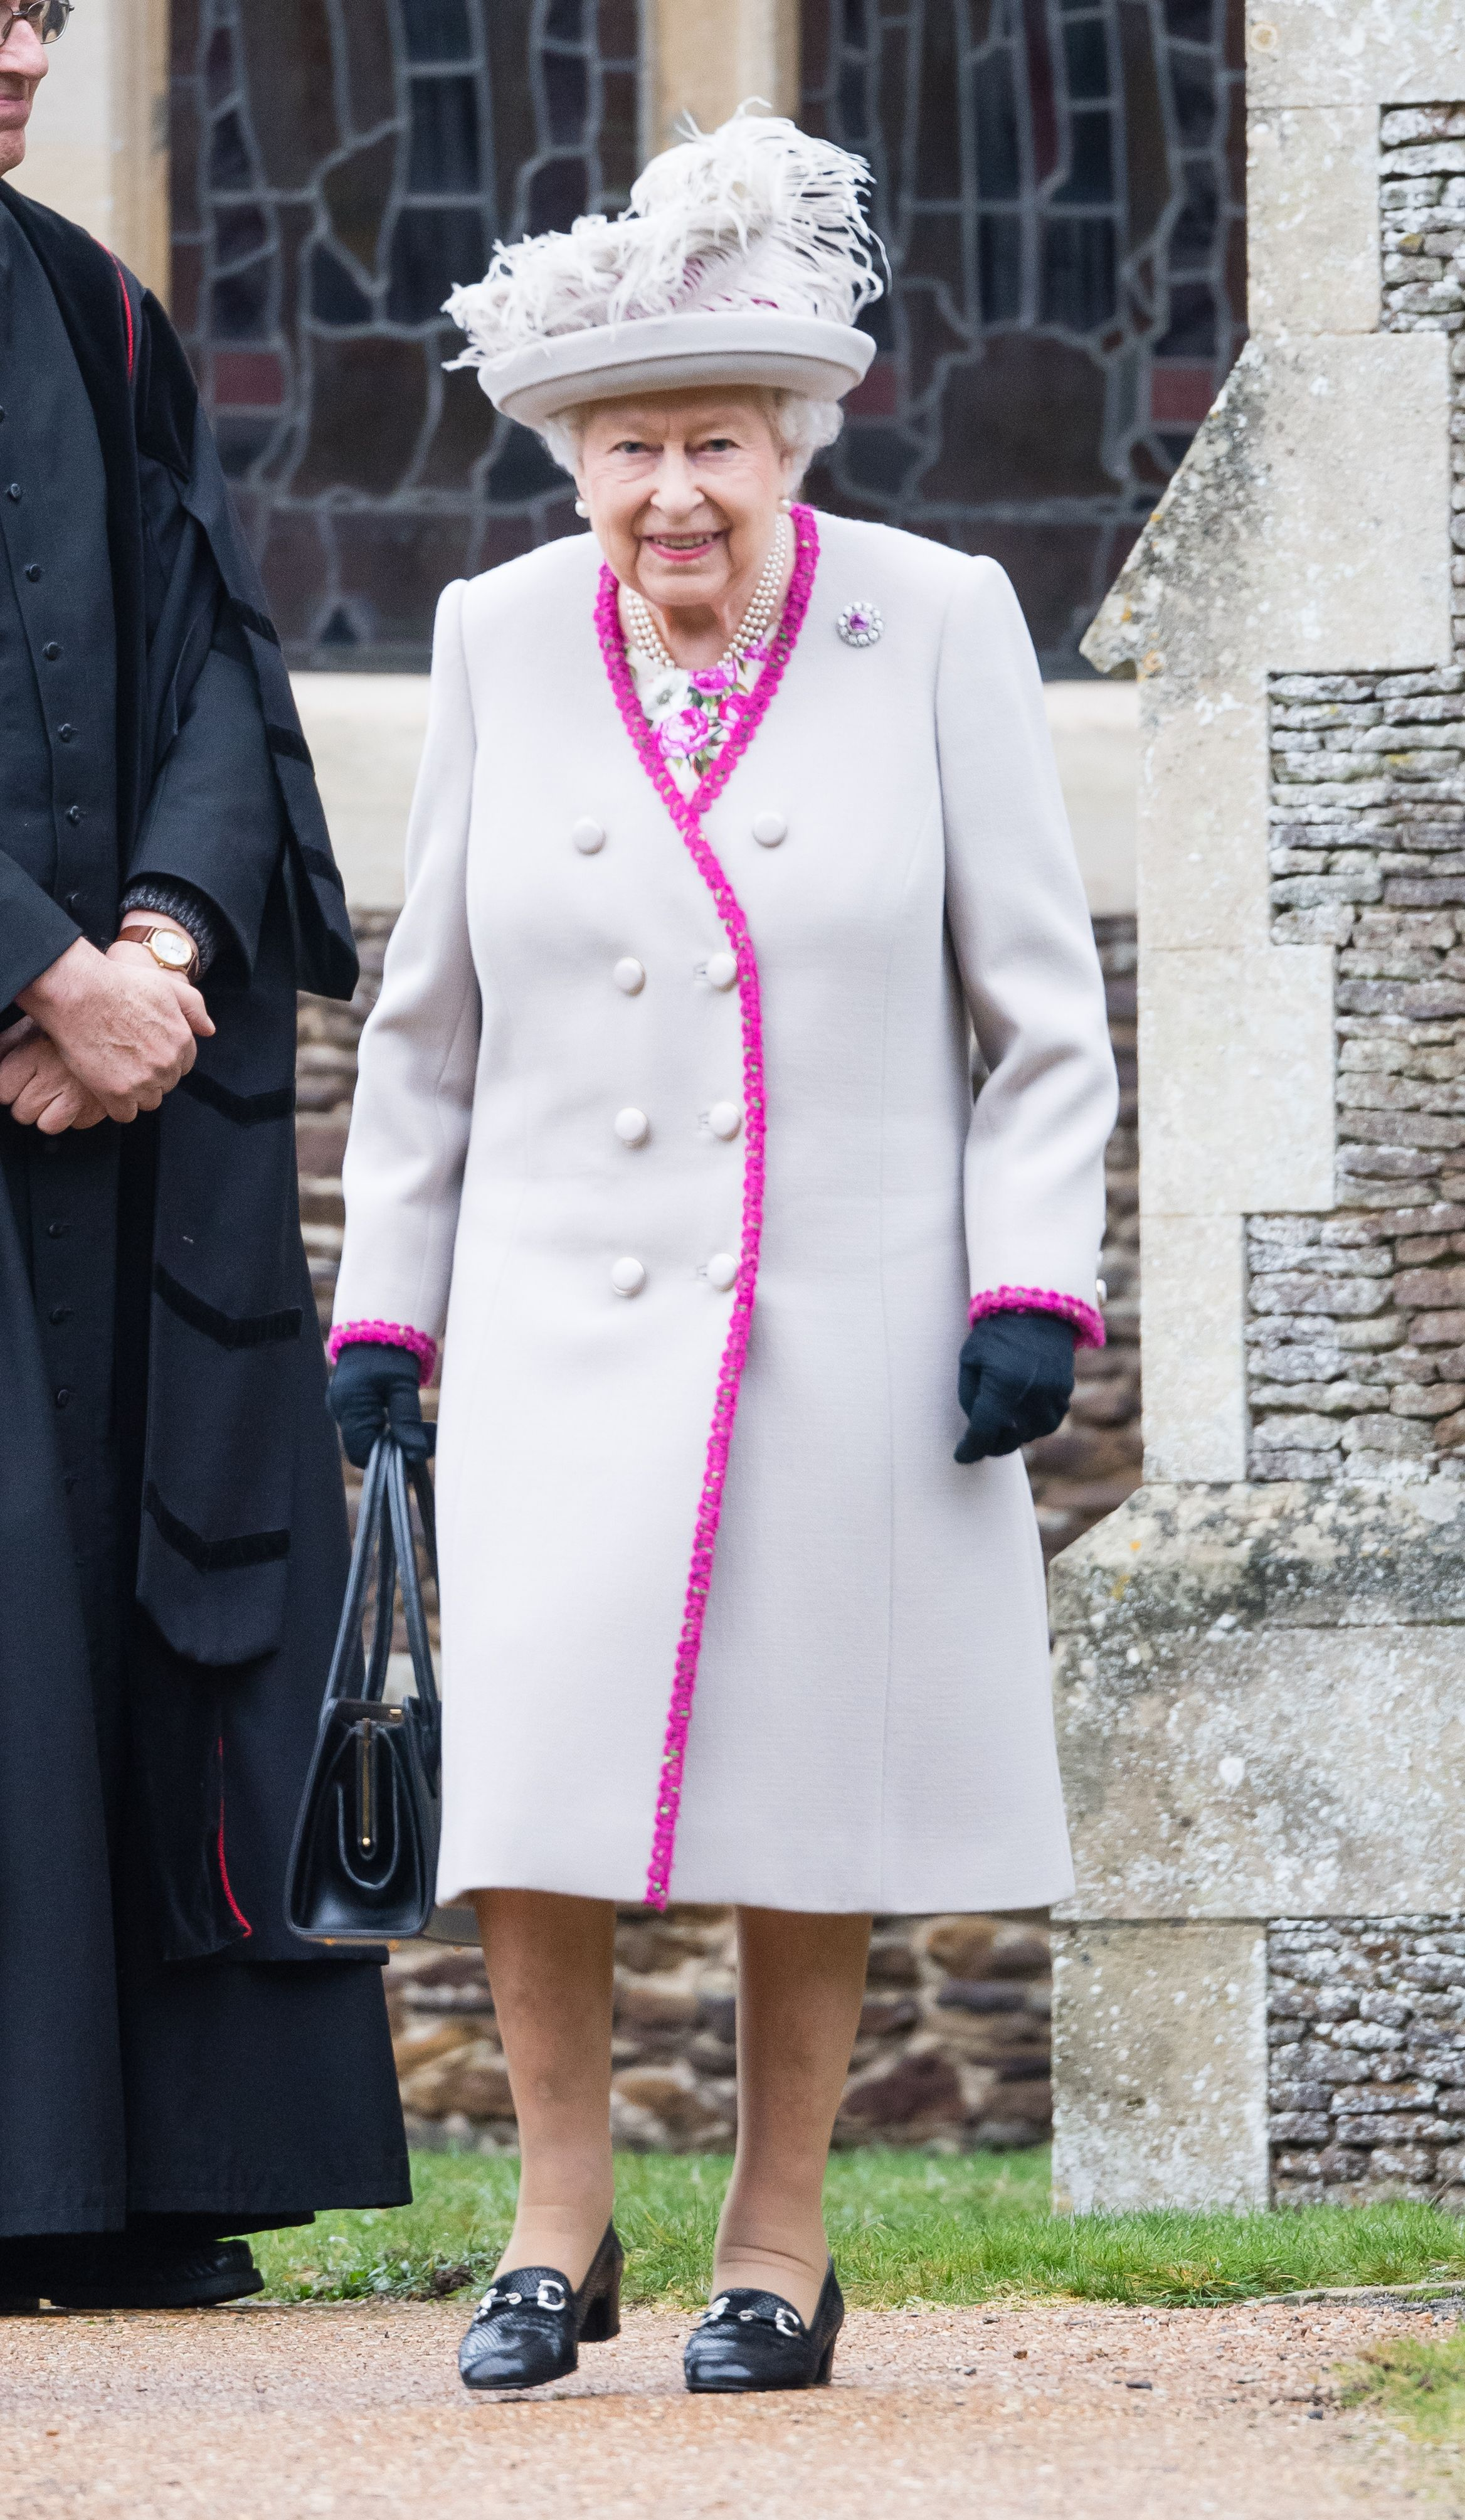 Queen Elizabeth Christmas Churhc Service 2020 William, Kate, Harry, and Meghan Are Front and Center During the